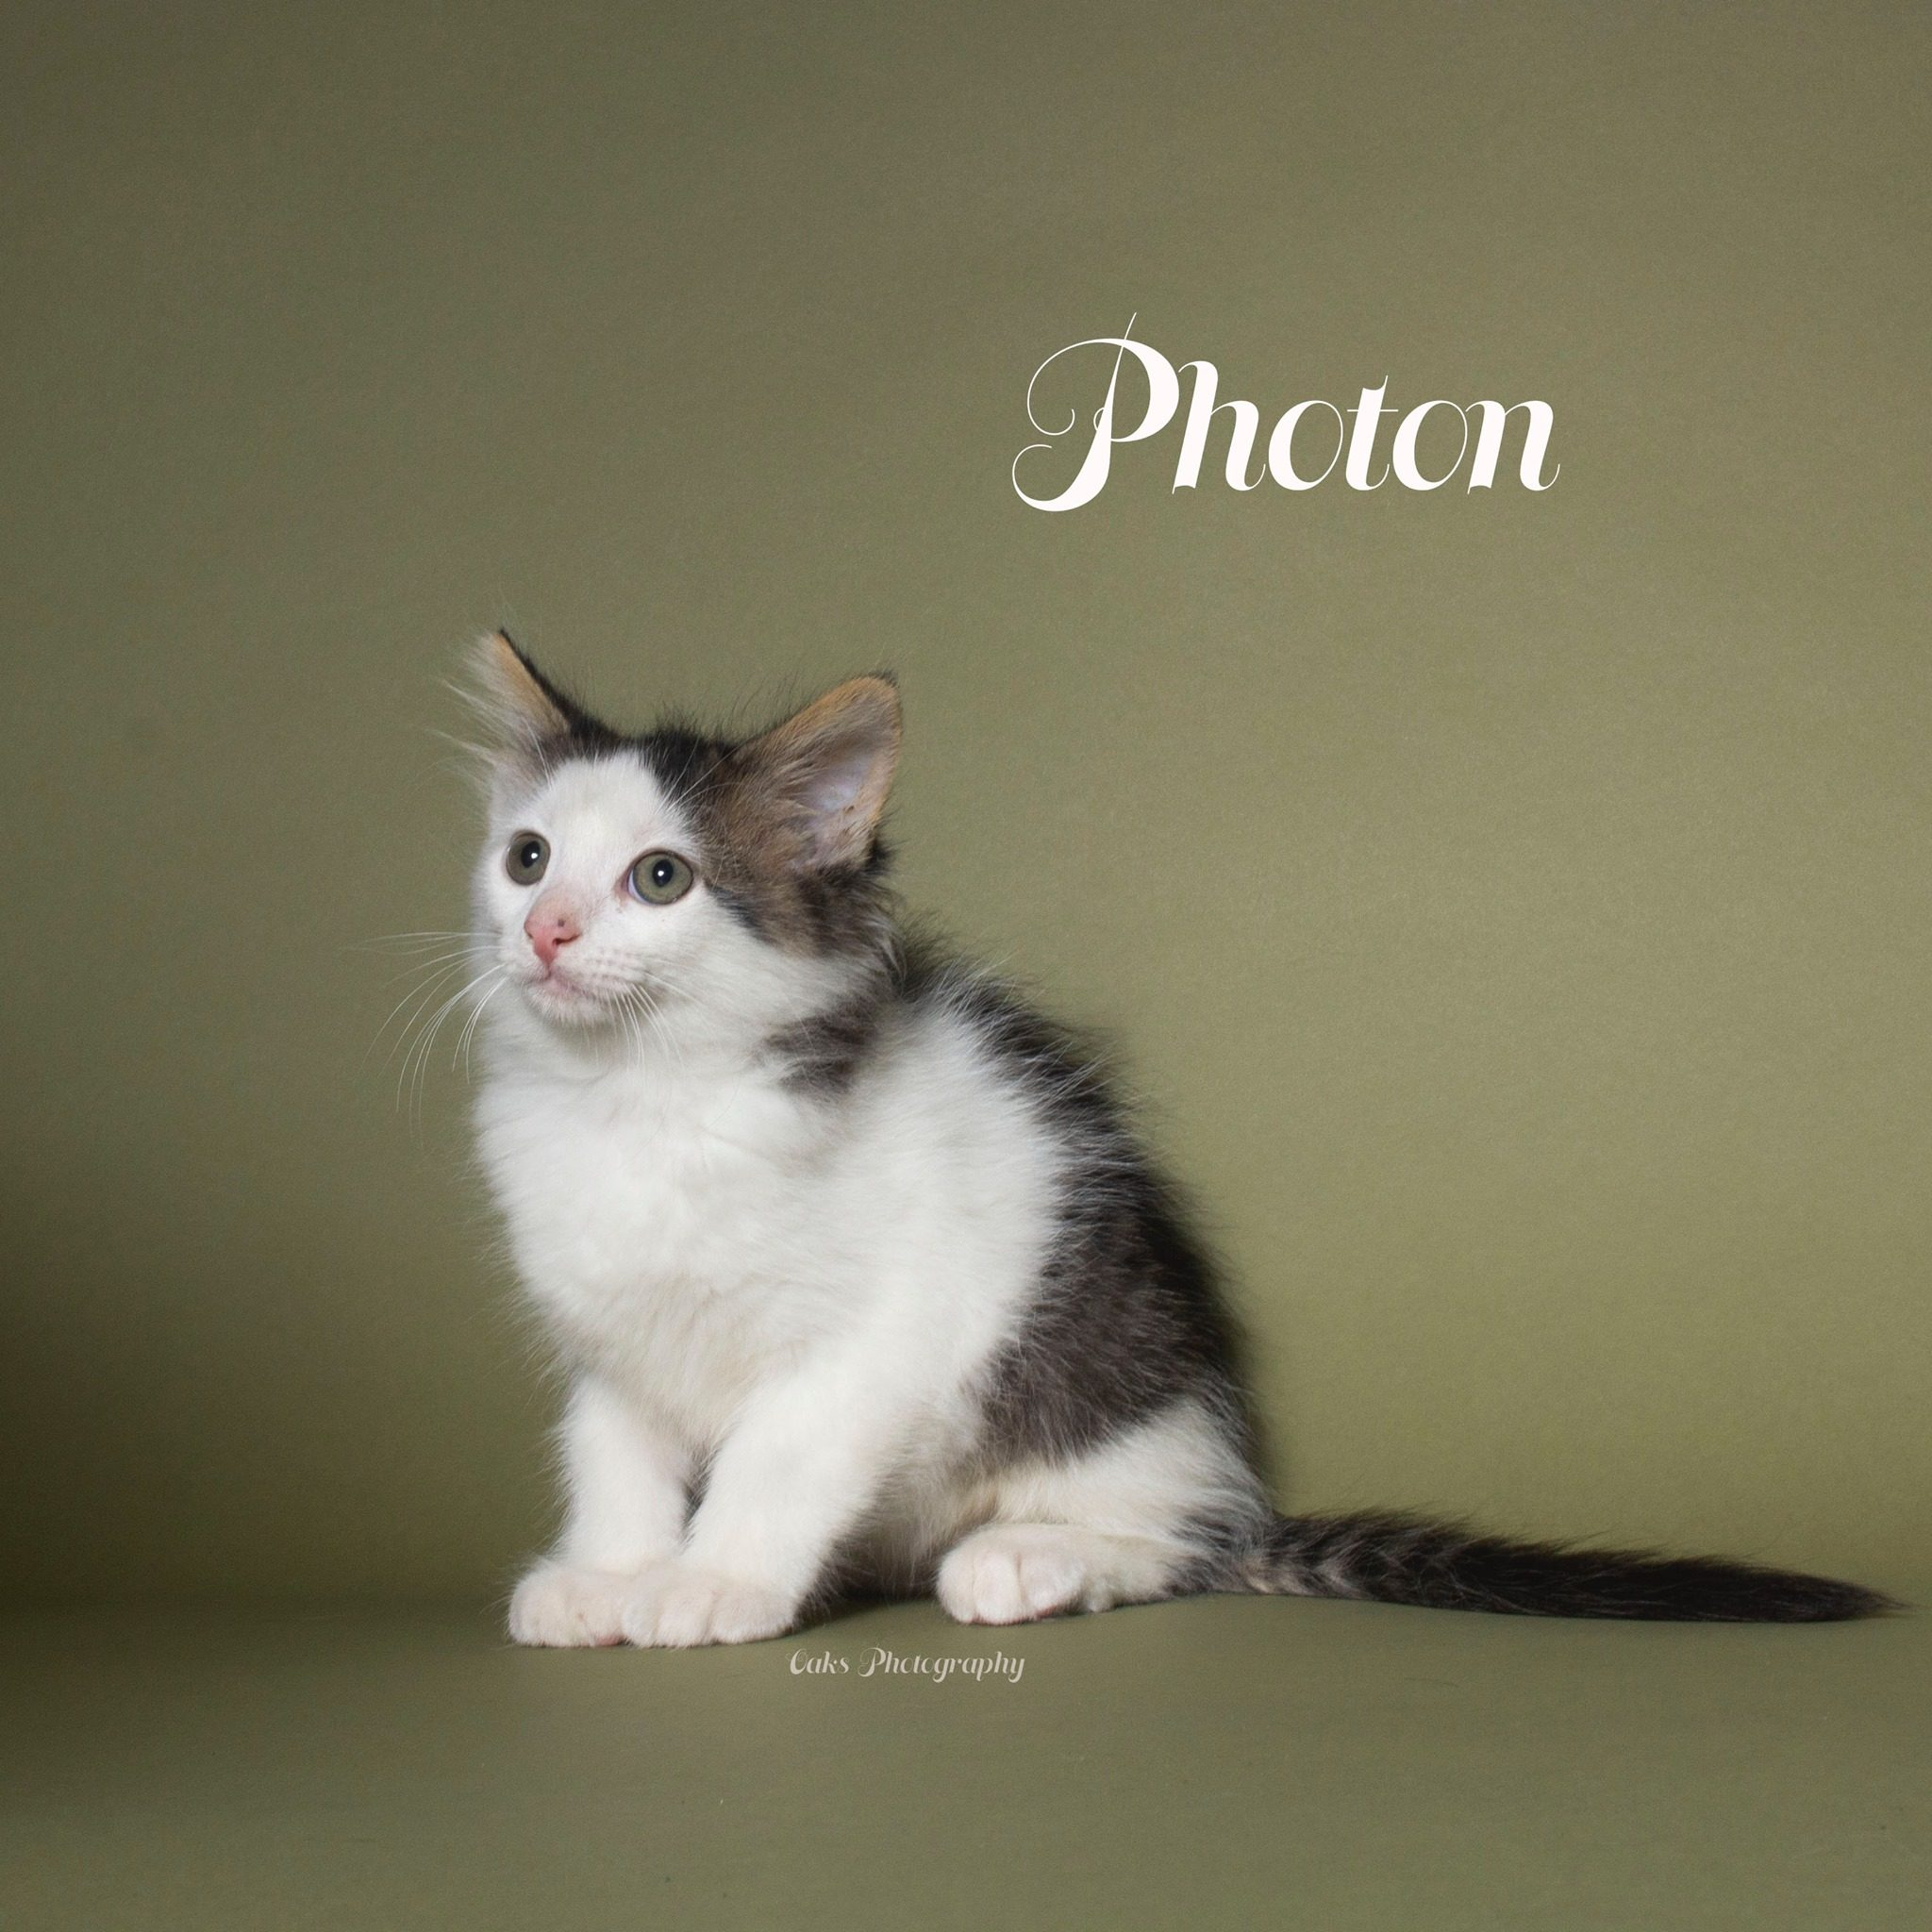 Adopt Photon the cutest cuddly kitty with Foster Army Animal Rescue in Riverside, CA